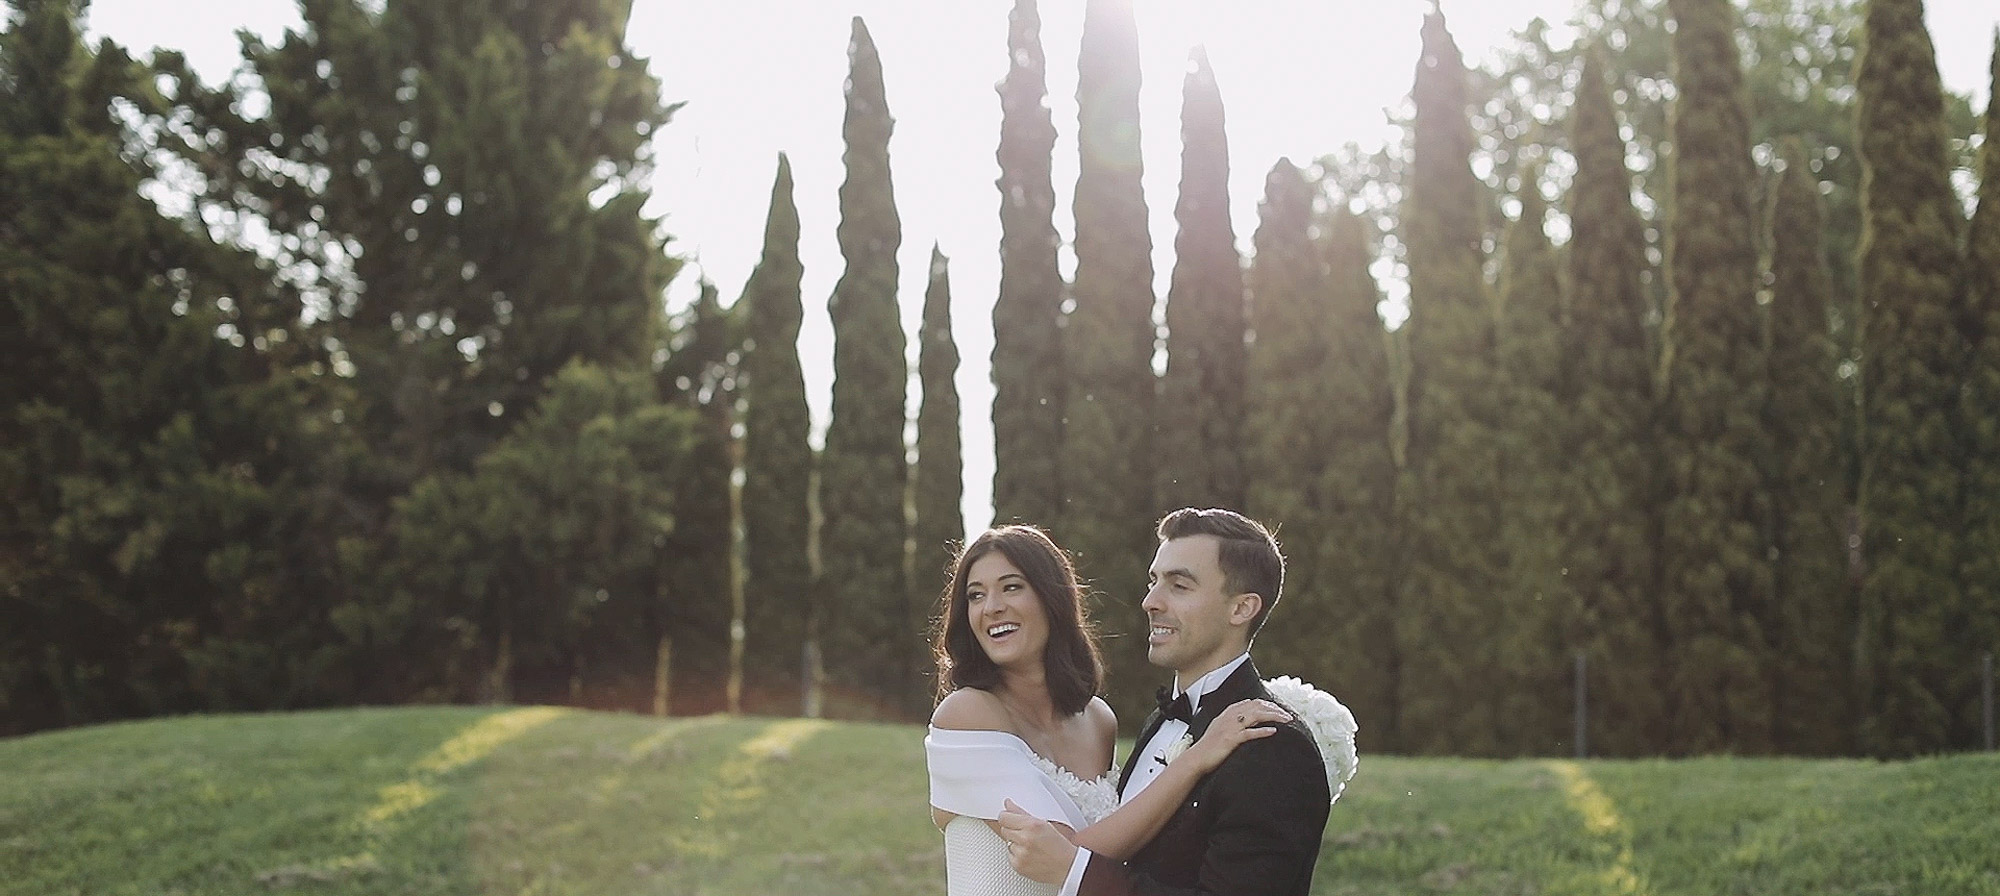 Annette and Dani Wedding Films Melbourne - Laura and Johnny.jpg